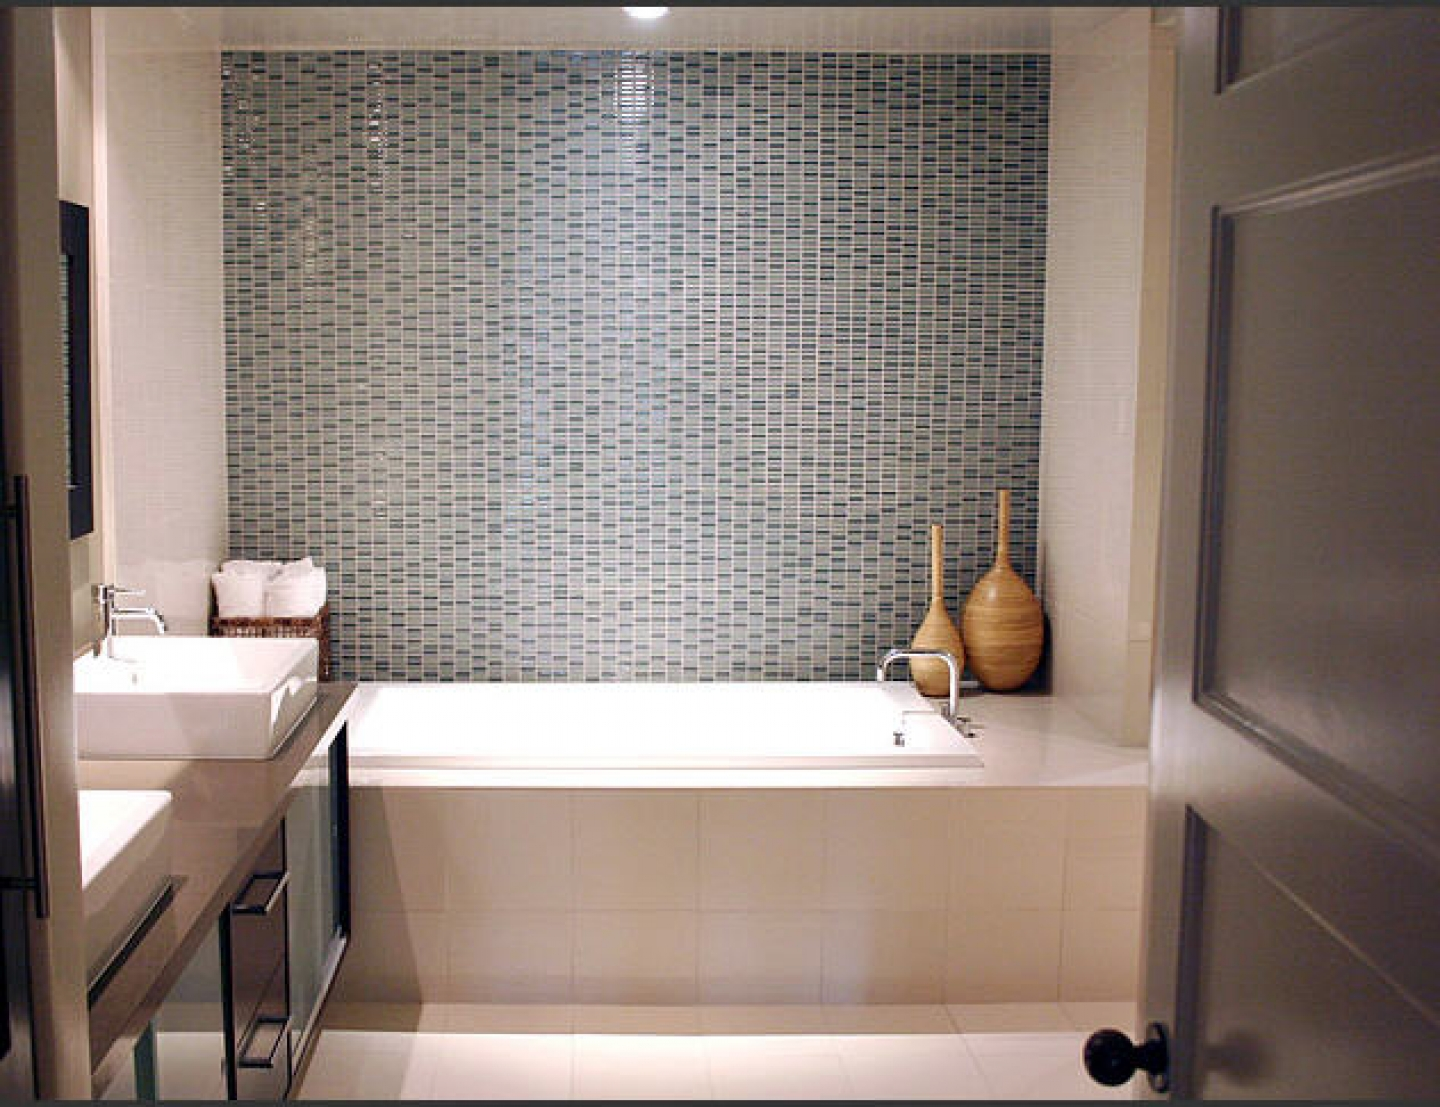 6049-small-space-modern-bathroom-tile-design-ideas_1440x900